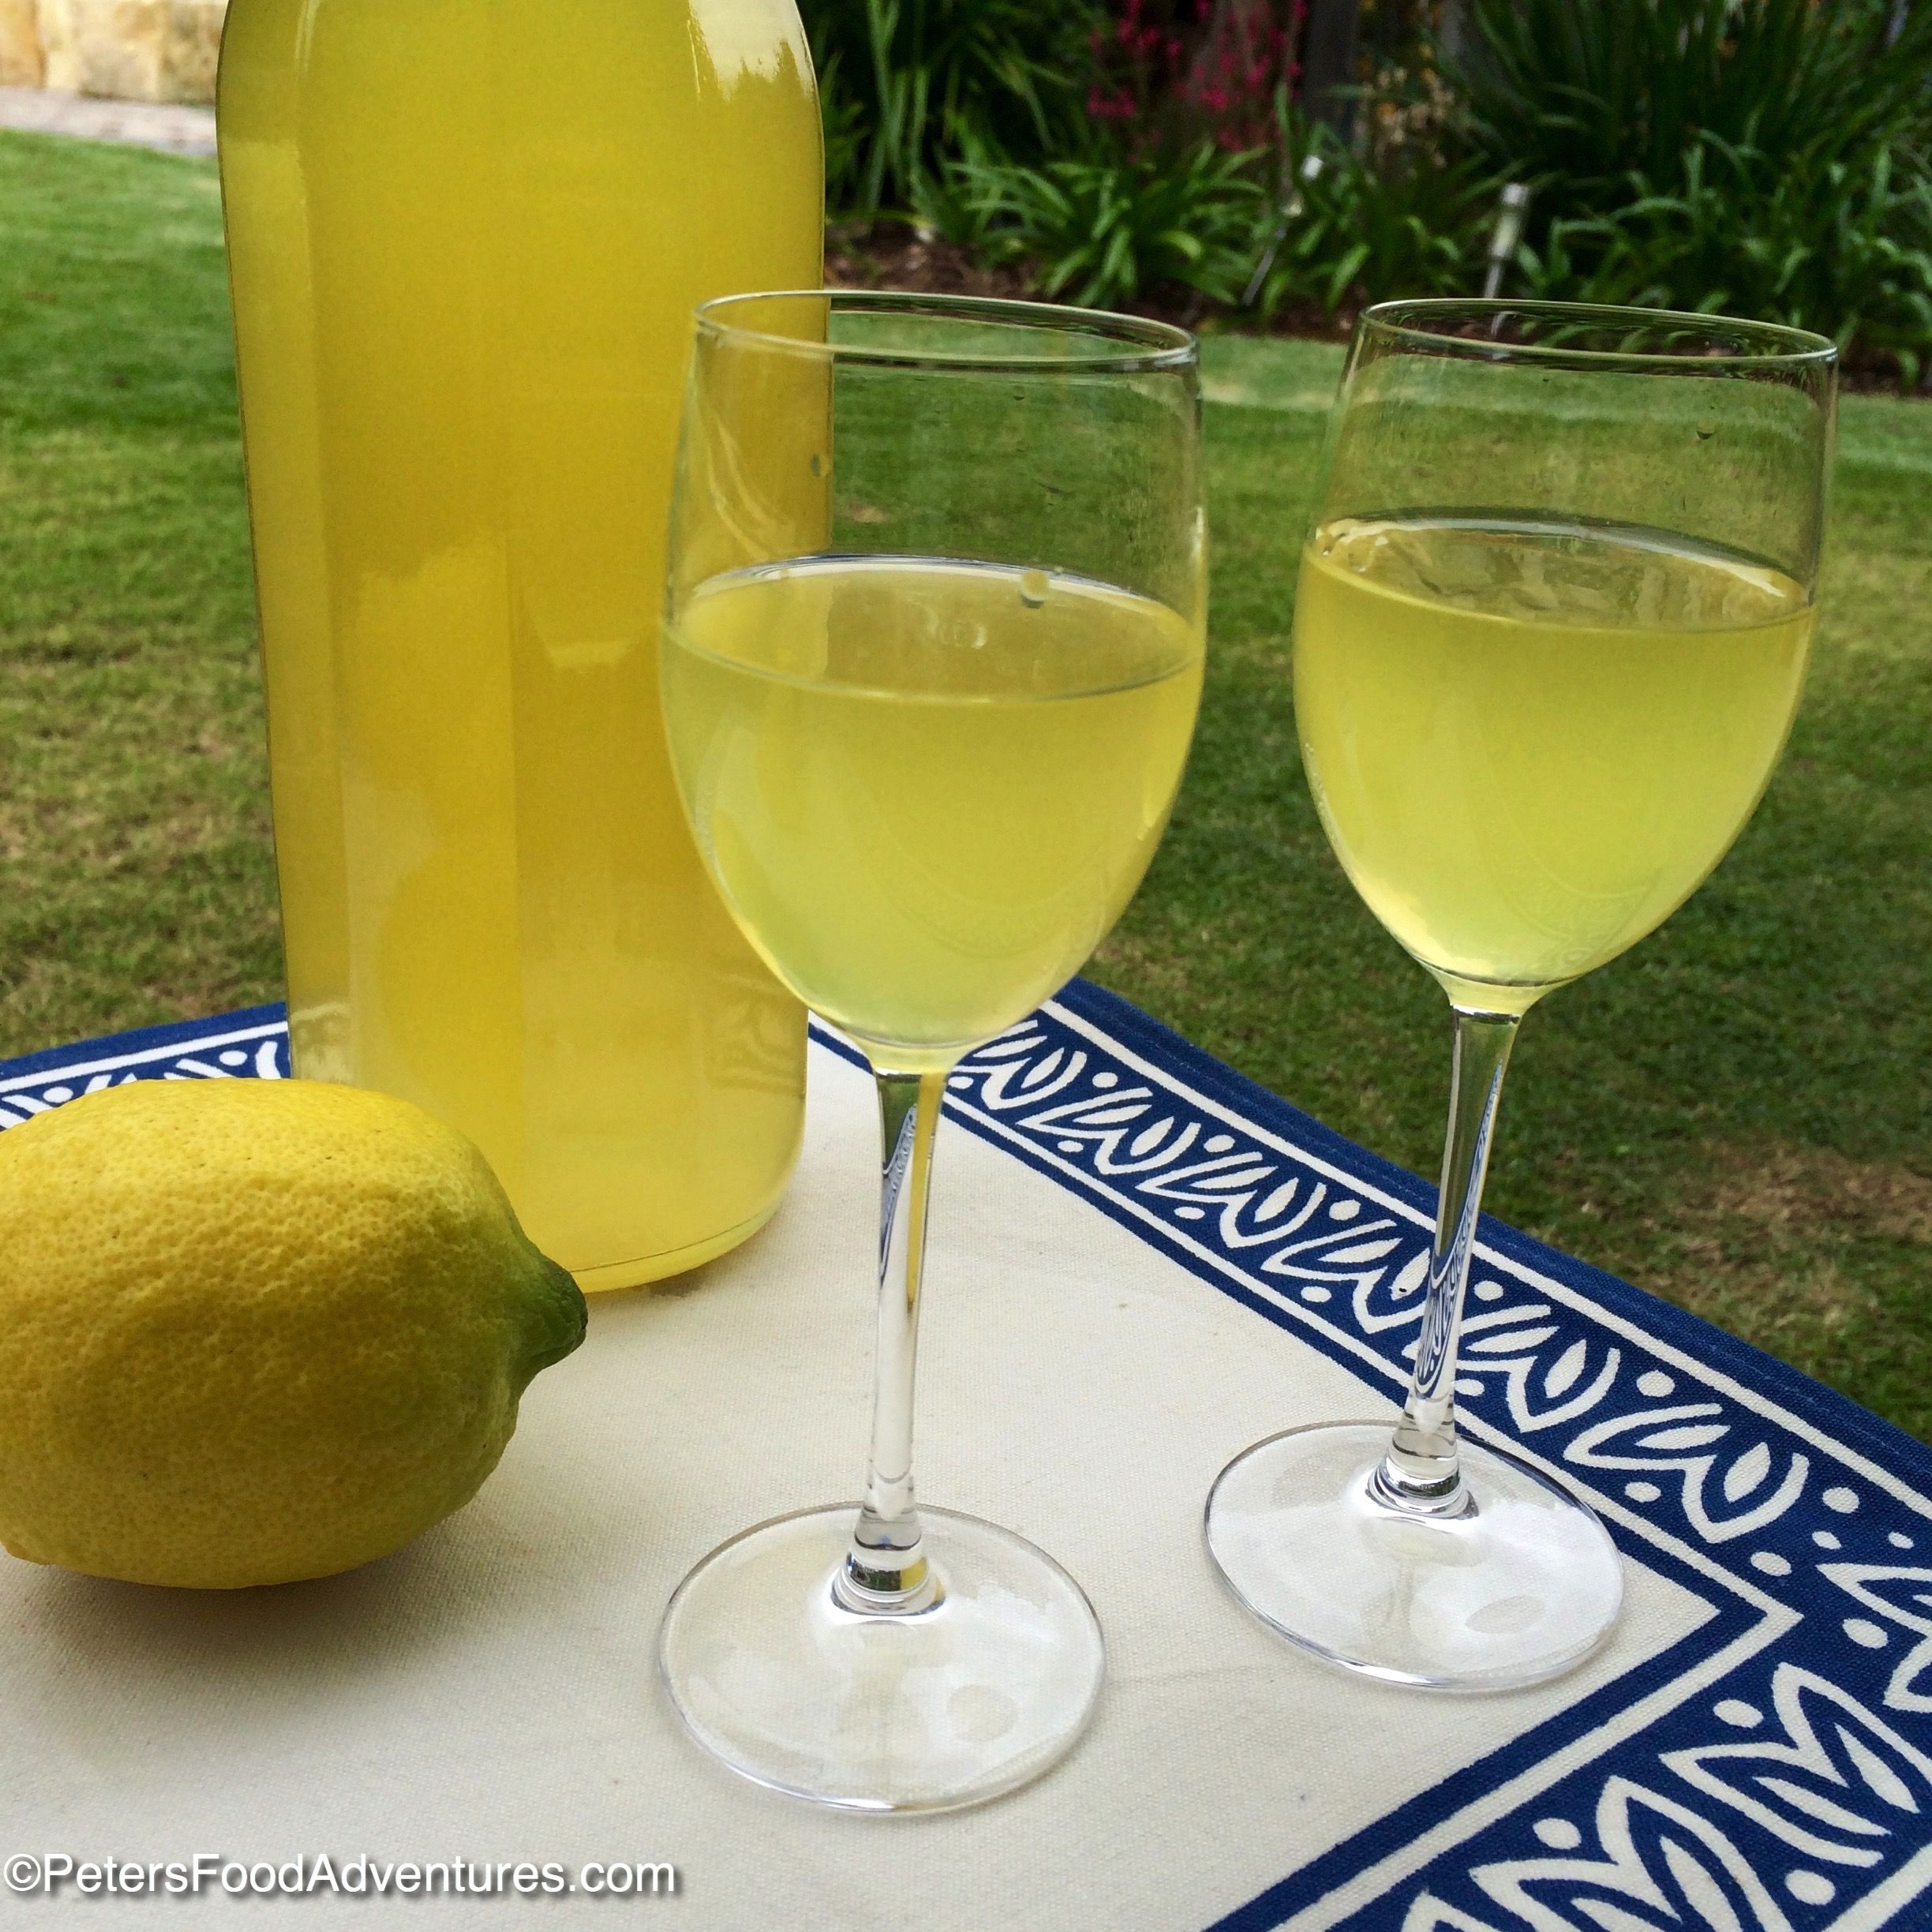 Homemade Limoncello, Making